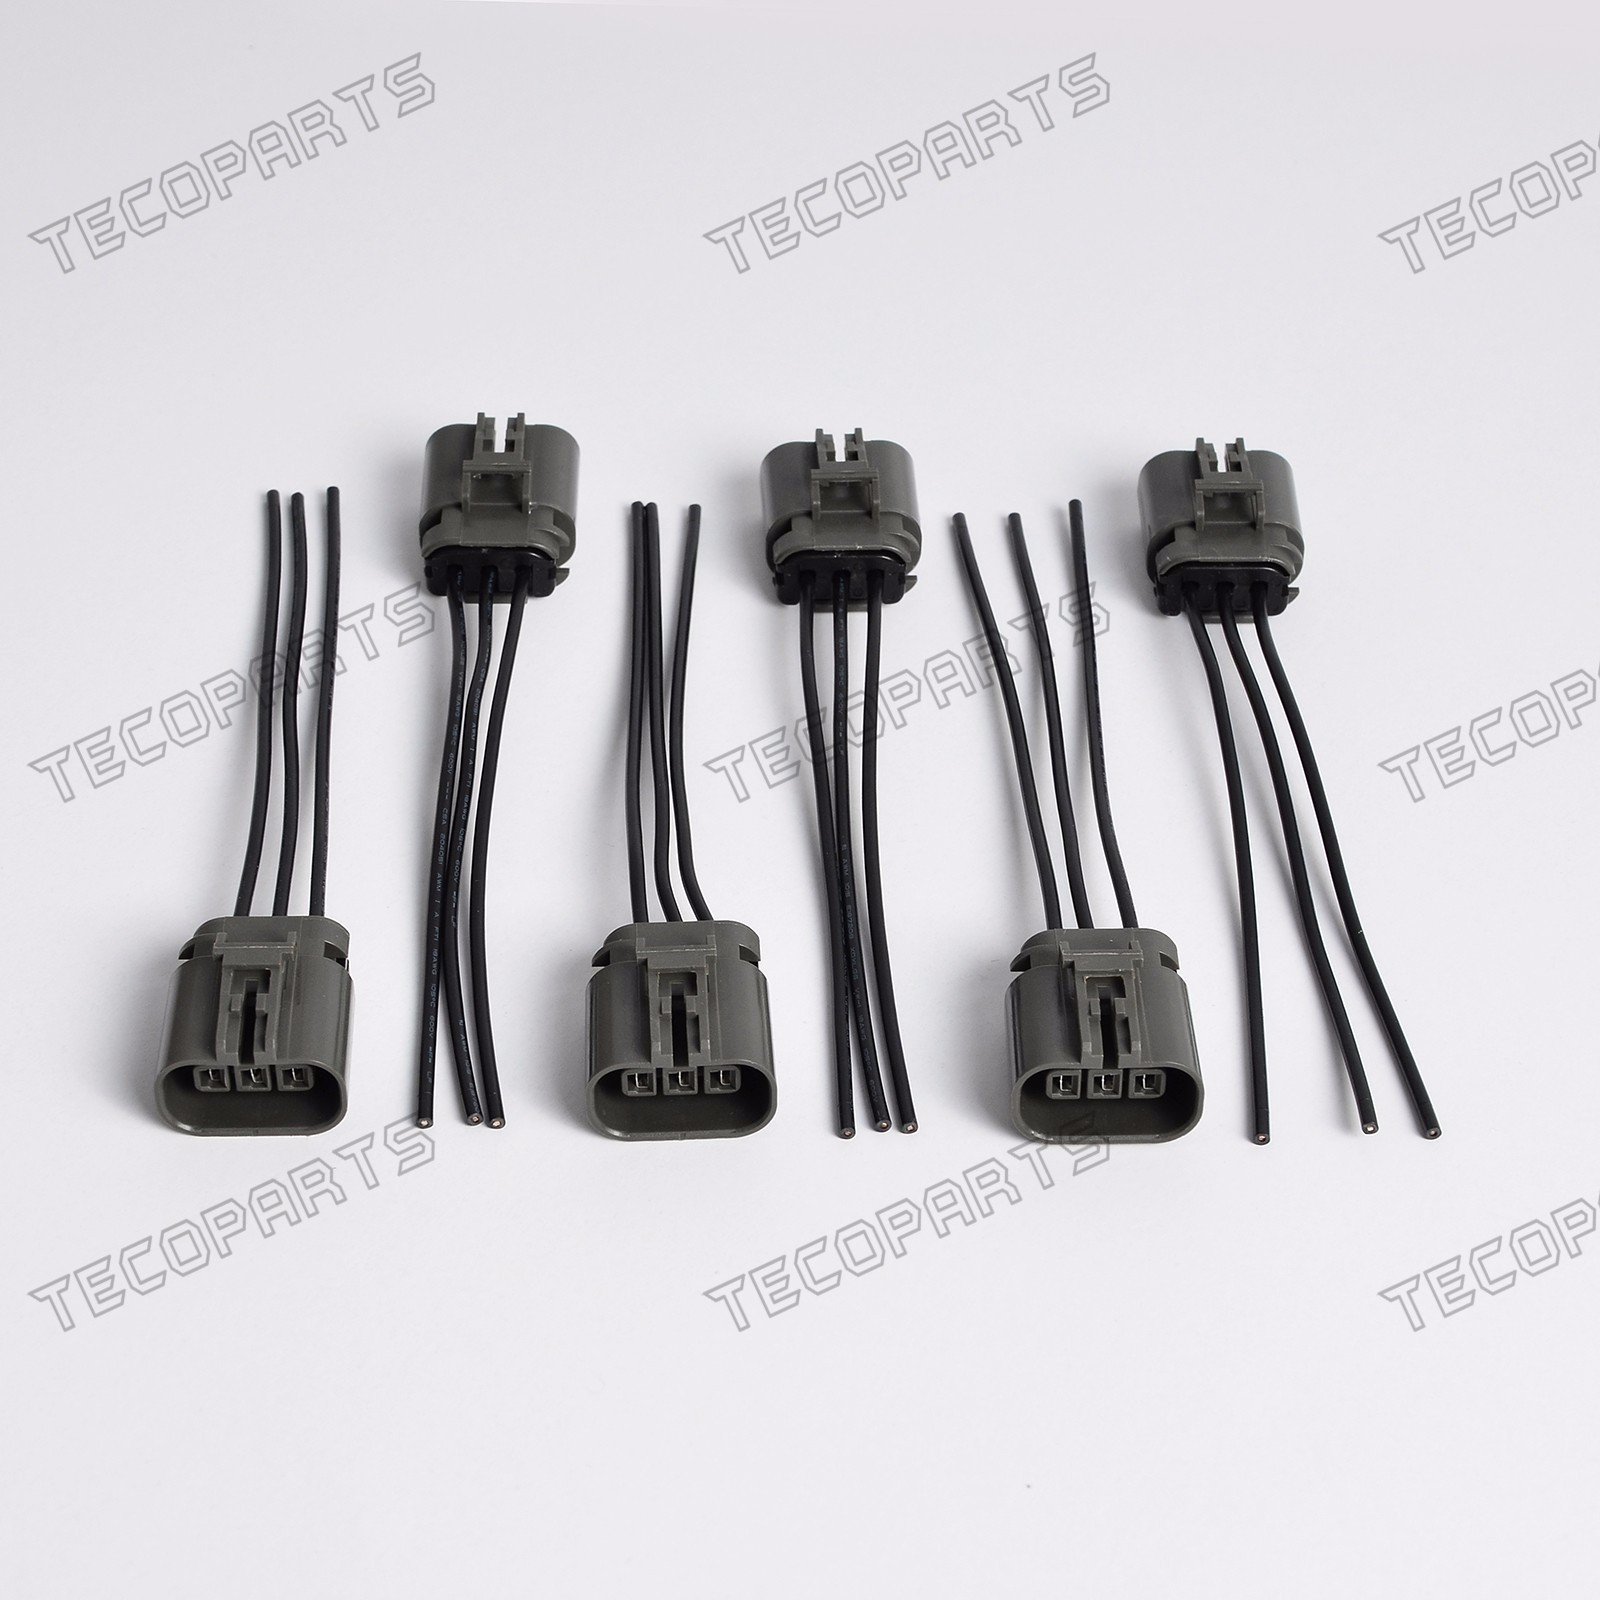 Ignition Coil Pack Wiring Connector Pigtails for Nissan 300ZX Z32 ...